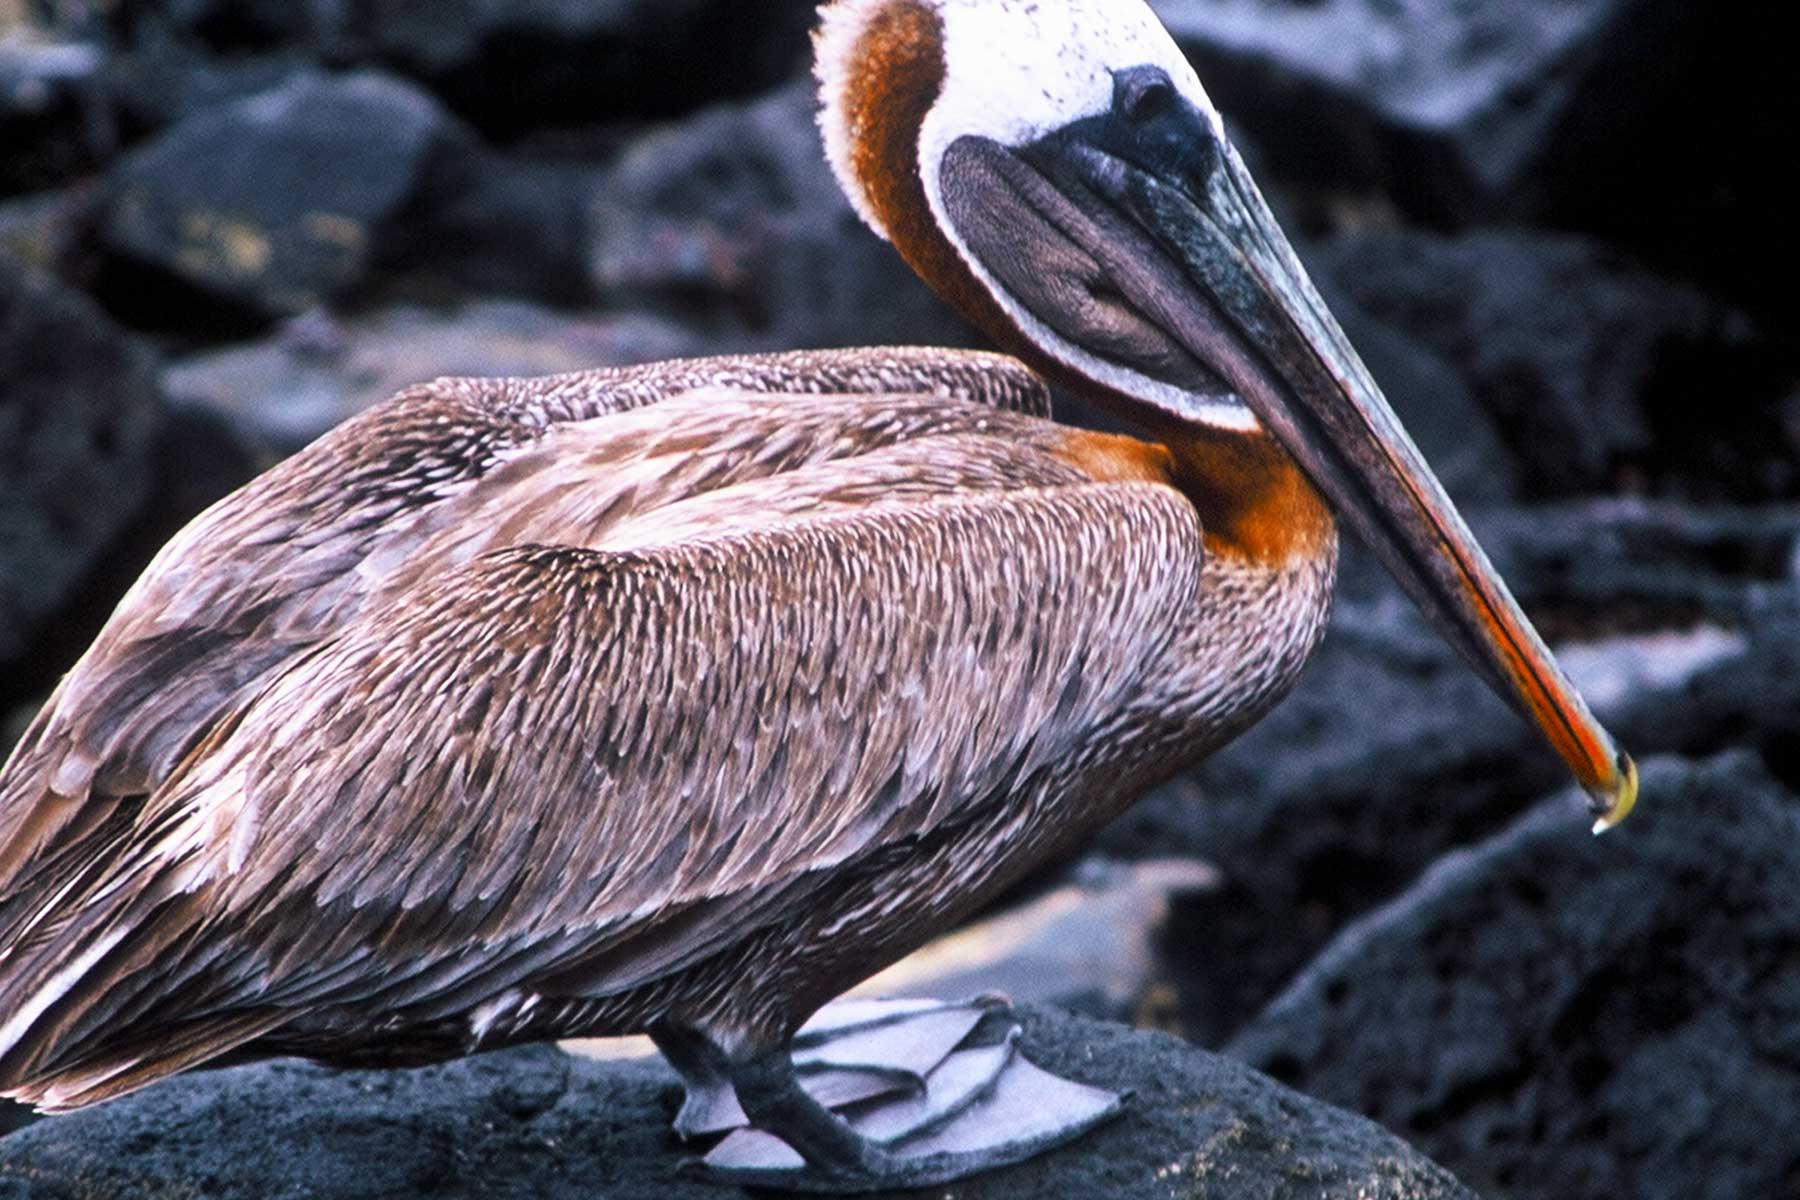 Galapagos Brown Pelican | USFQ | Dr Steven A Martin | Research Photo Journal | Environmental Studies